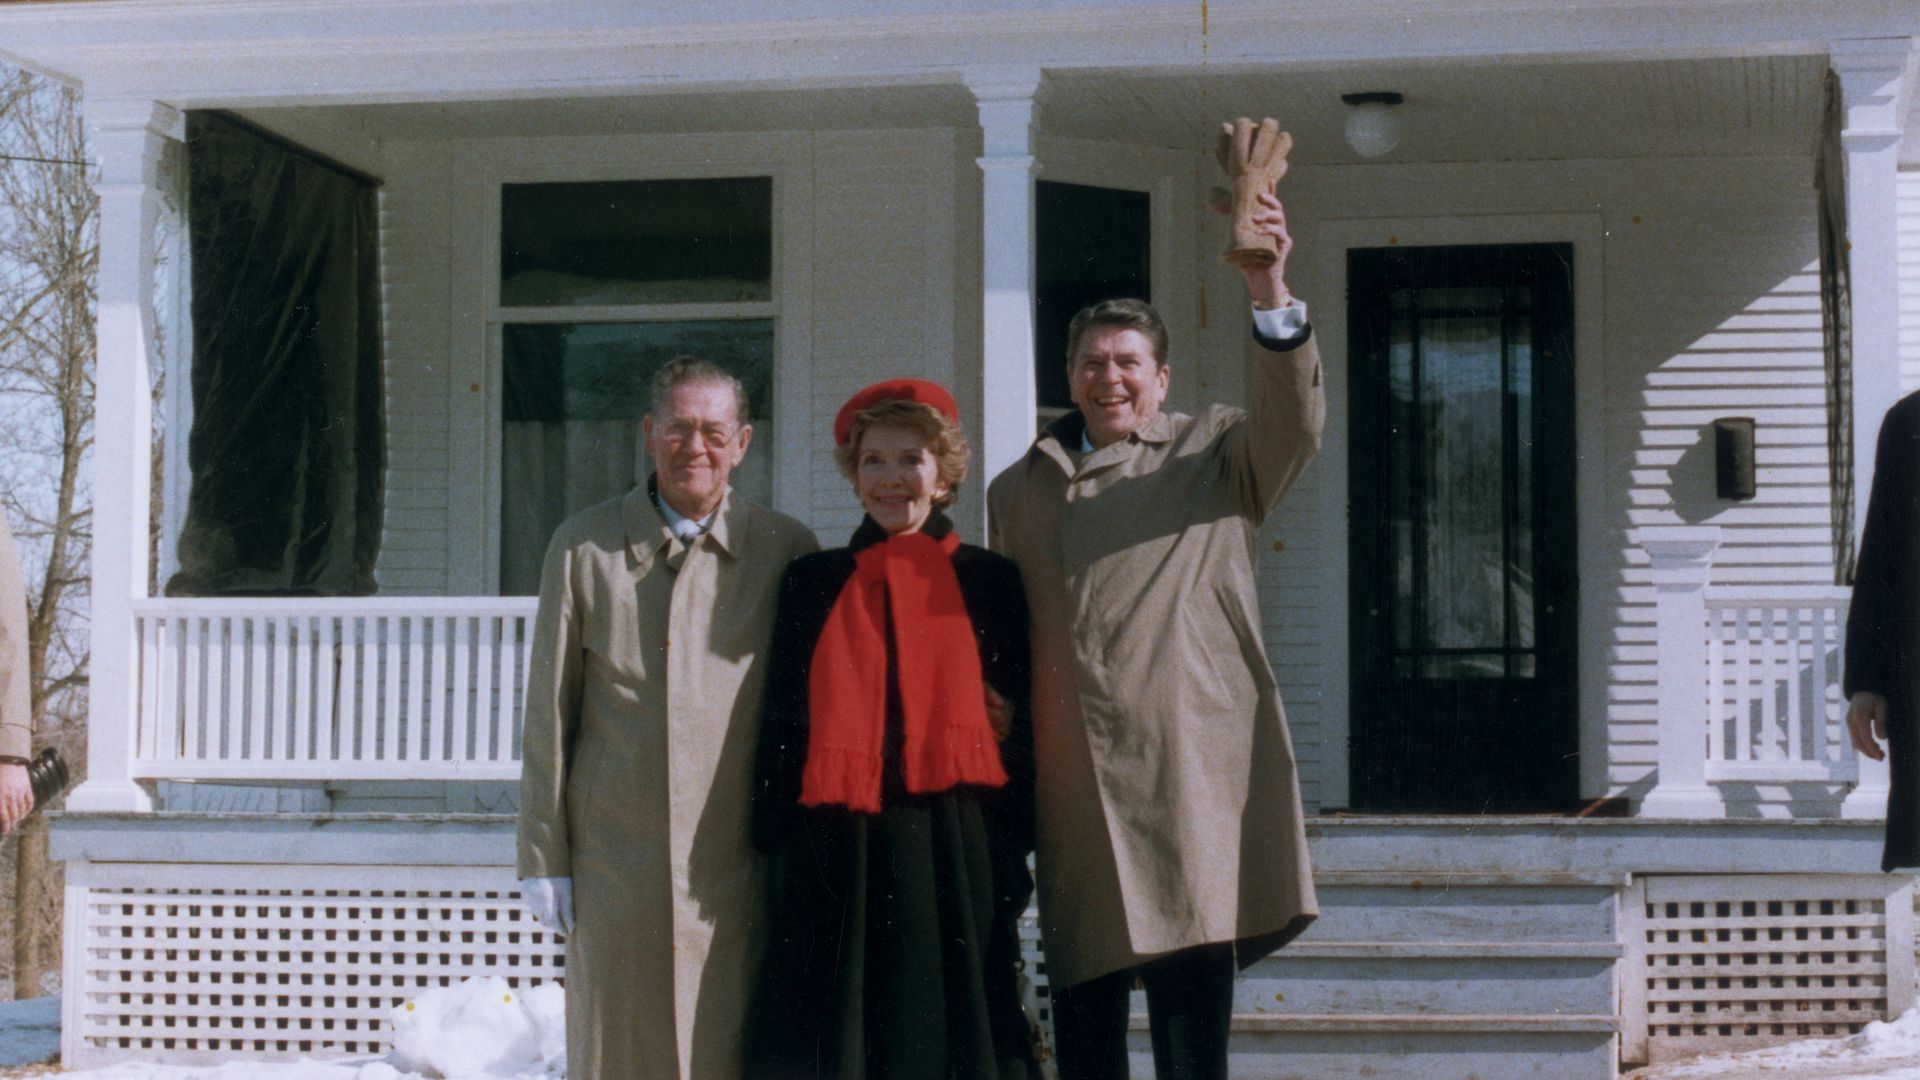 President Reagan, First Lady Nancy Reagan and his brother, Neil, visit the Reagans' boyhood home in 1984.